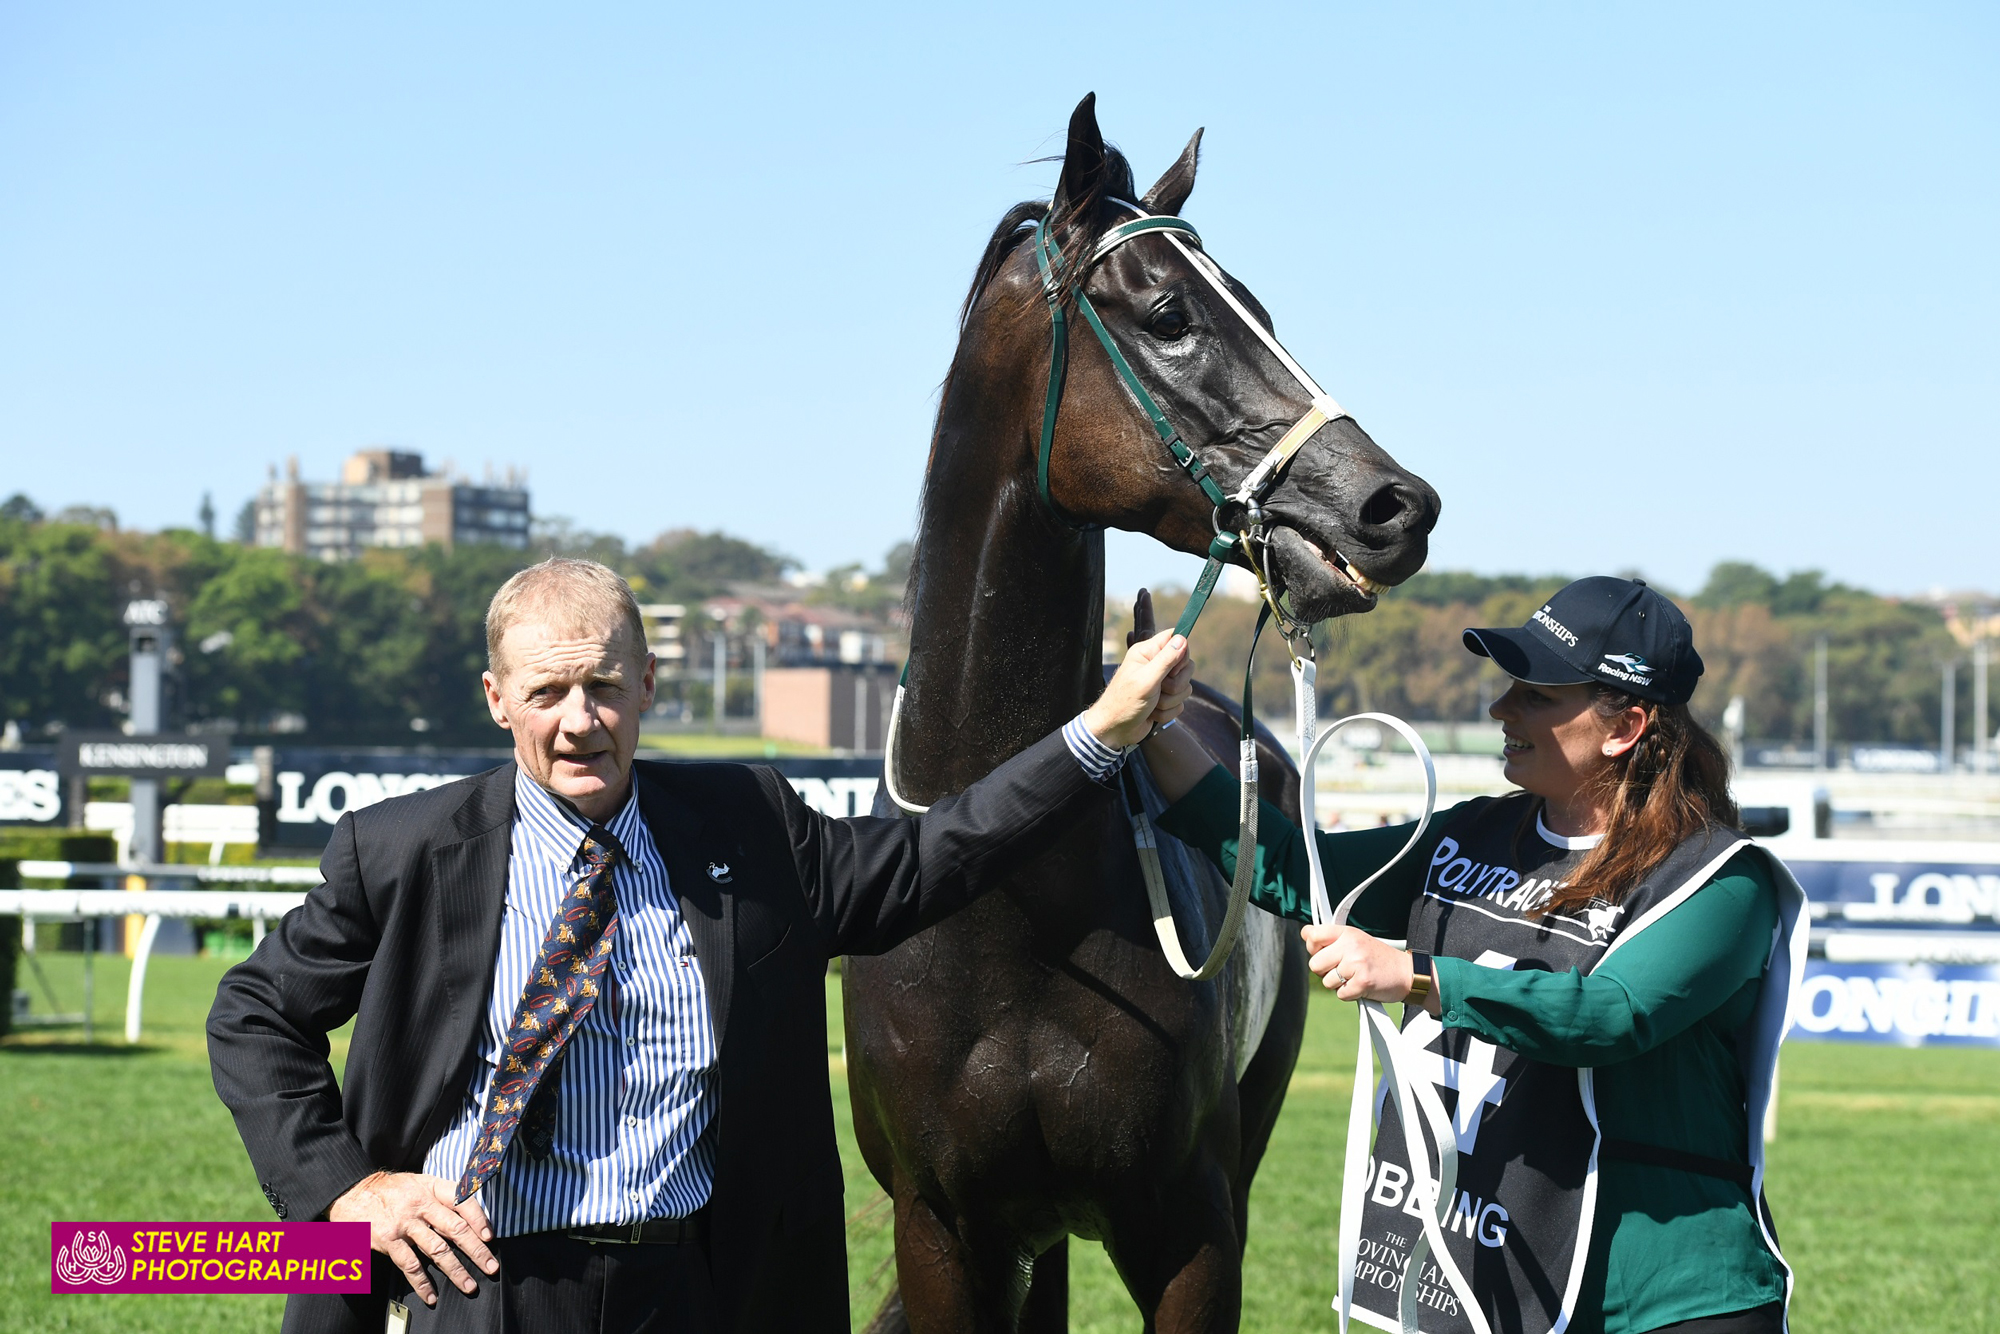 Image courtesy Steve Hart Photographics - A proud Bernie with Bobbing after the Championship final at Randwick.